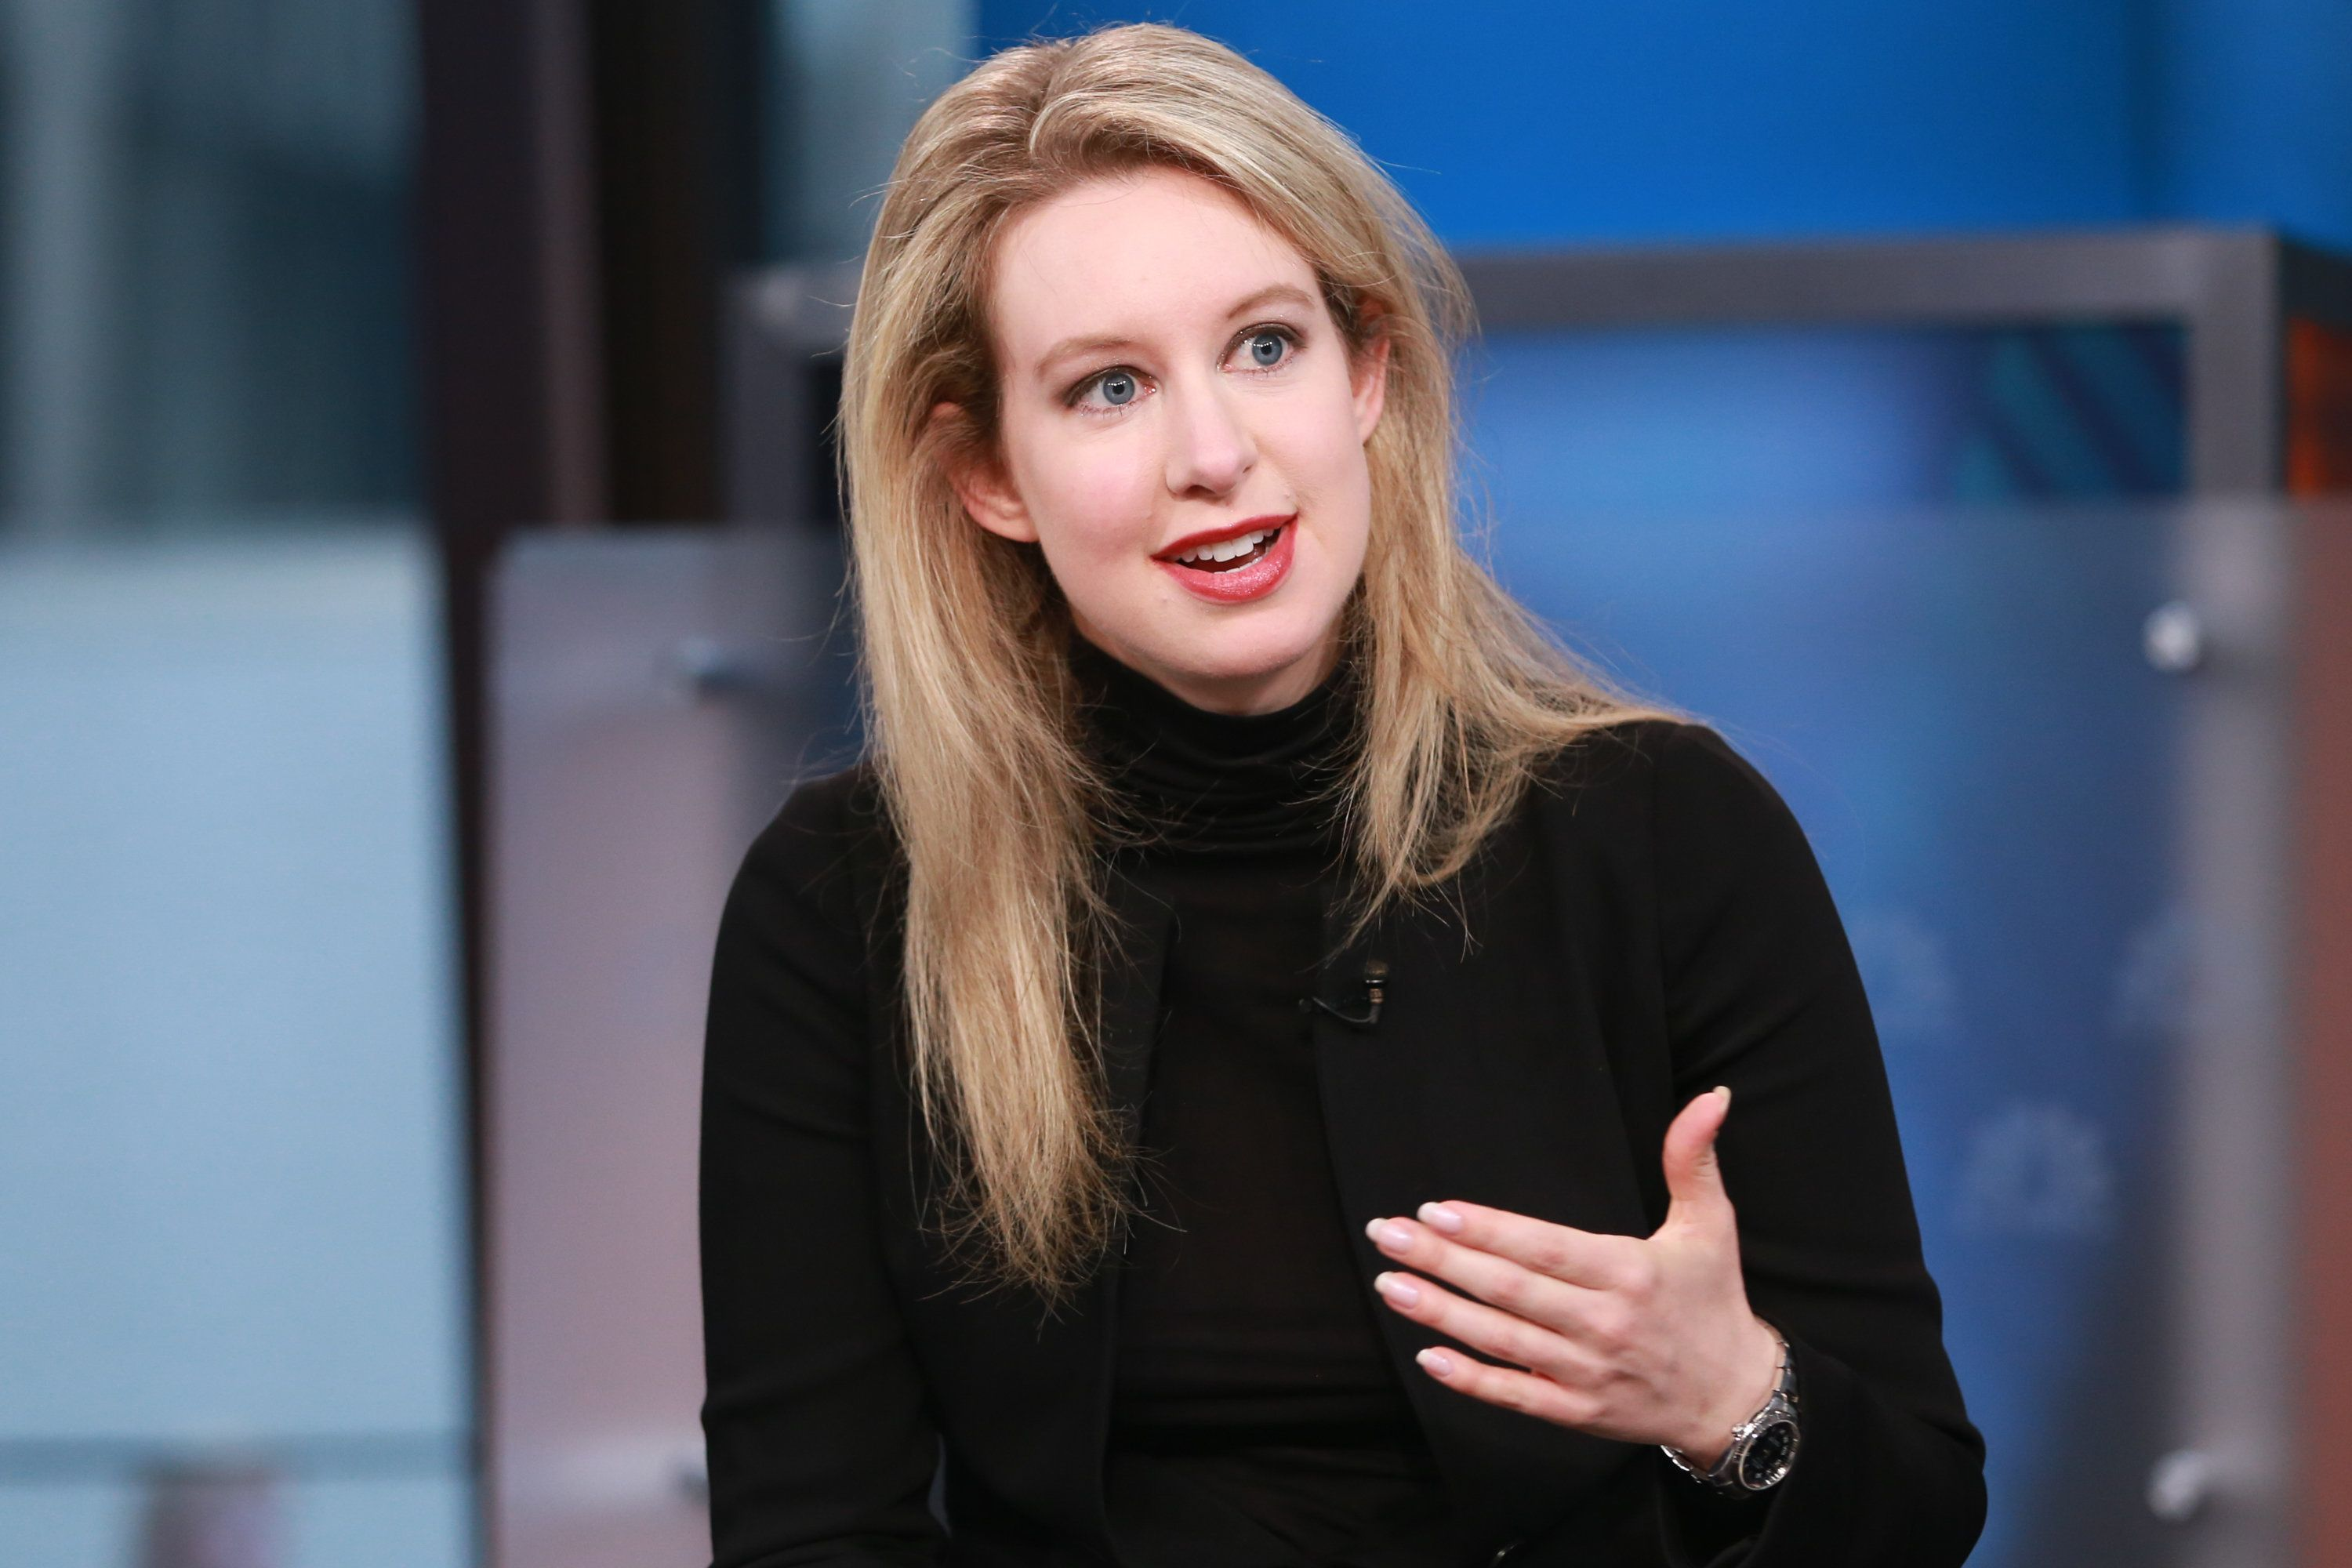 SQUAWK BOX -- Elizabeth Holmes, Theranos CEO and the world's youngest self-made female billionaire, in an interview on September 29, 2015 -- (Photo by: David Orrell/CNBC/NBCU Photo Bank via Getty Images)